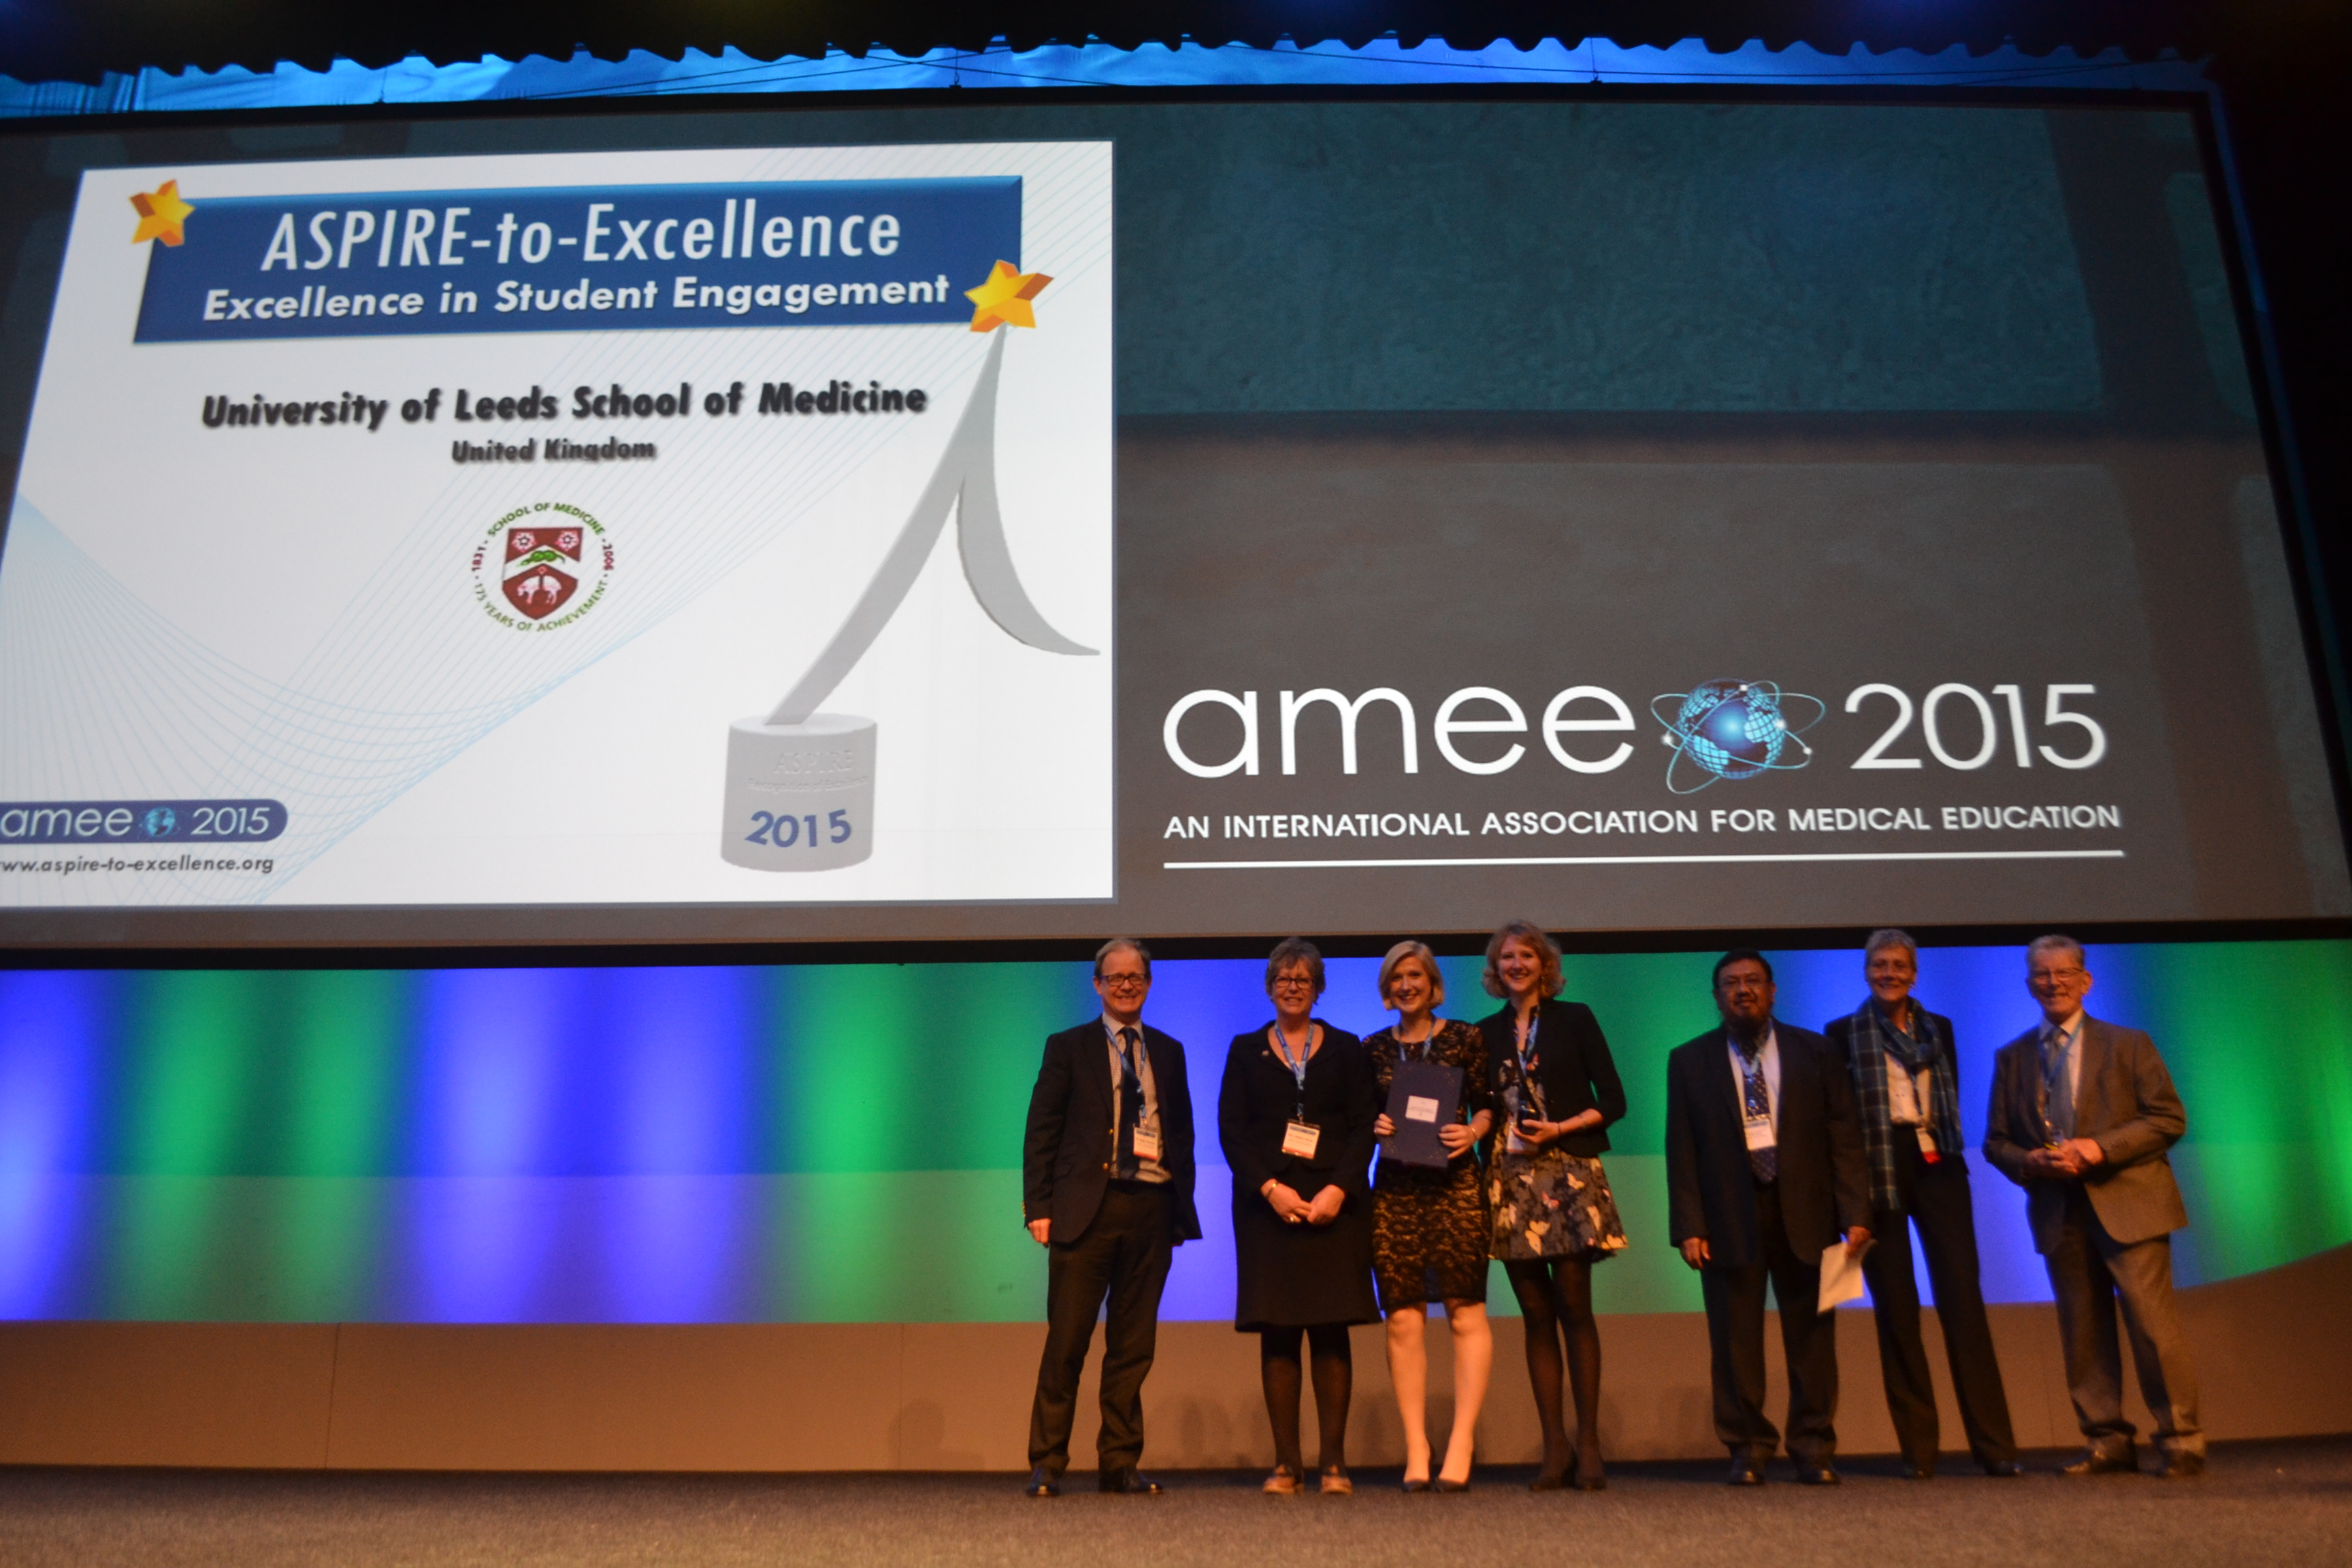 AMEE 2015 - ASPIRE-to-Excellence Student Awards - 017_Leeds.JPG